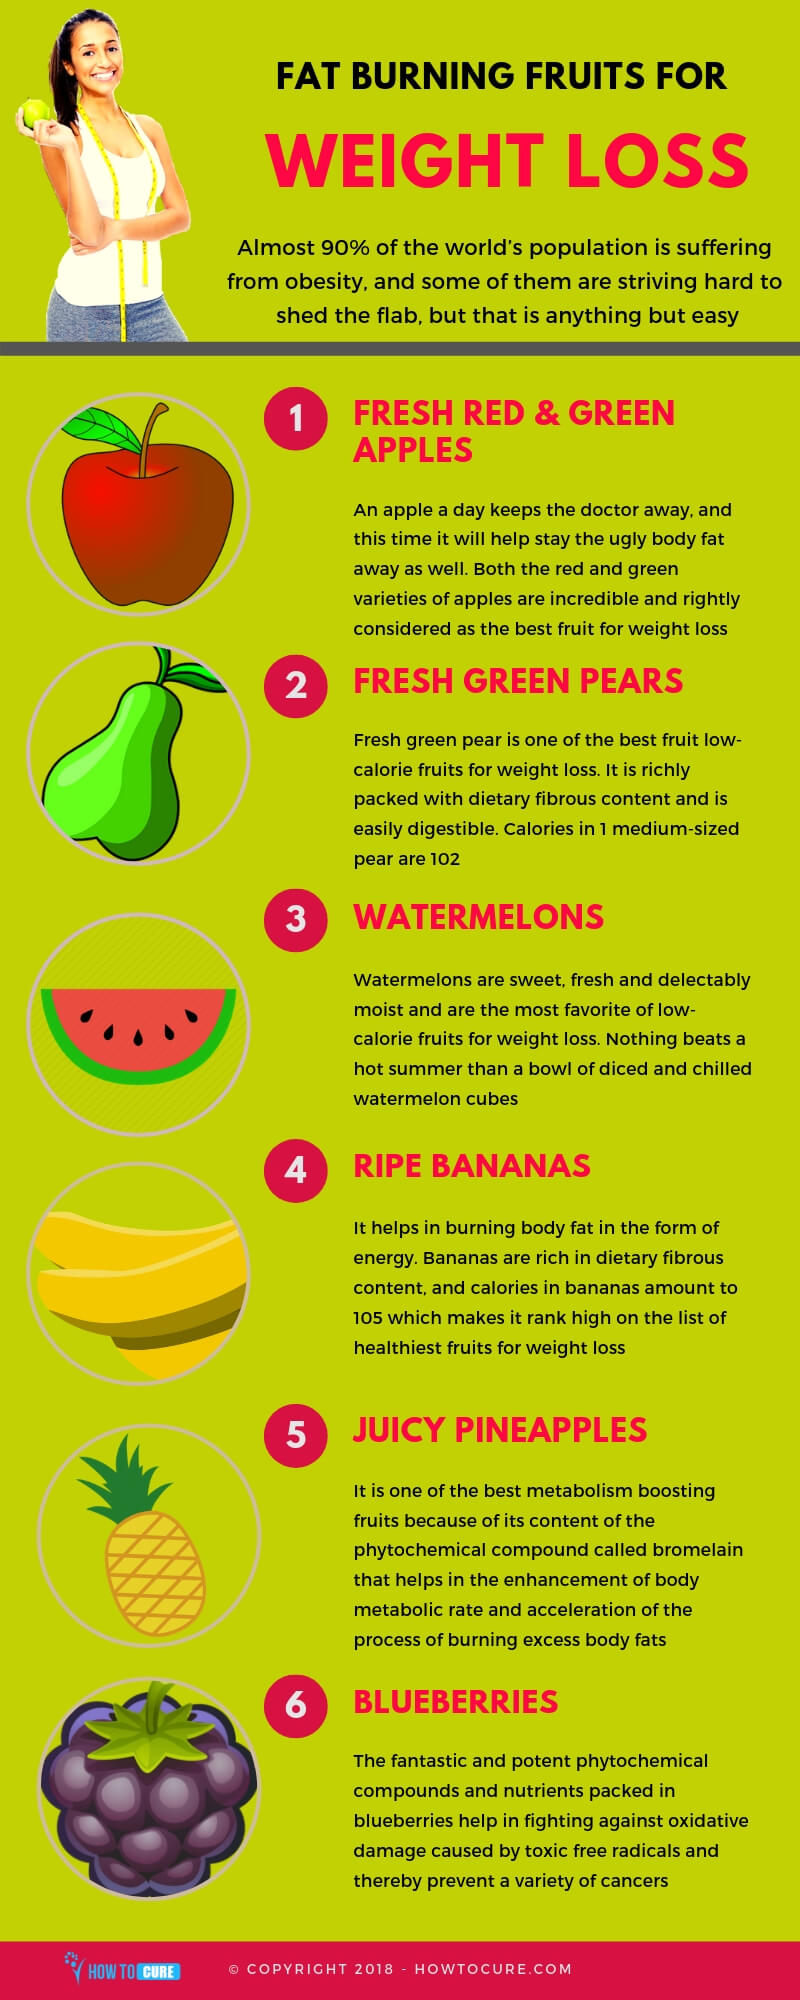 Fat burning fruits for weight loss